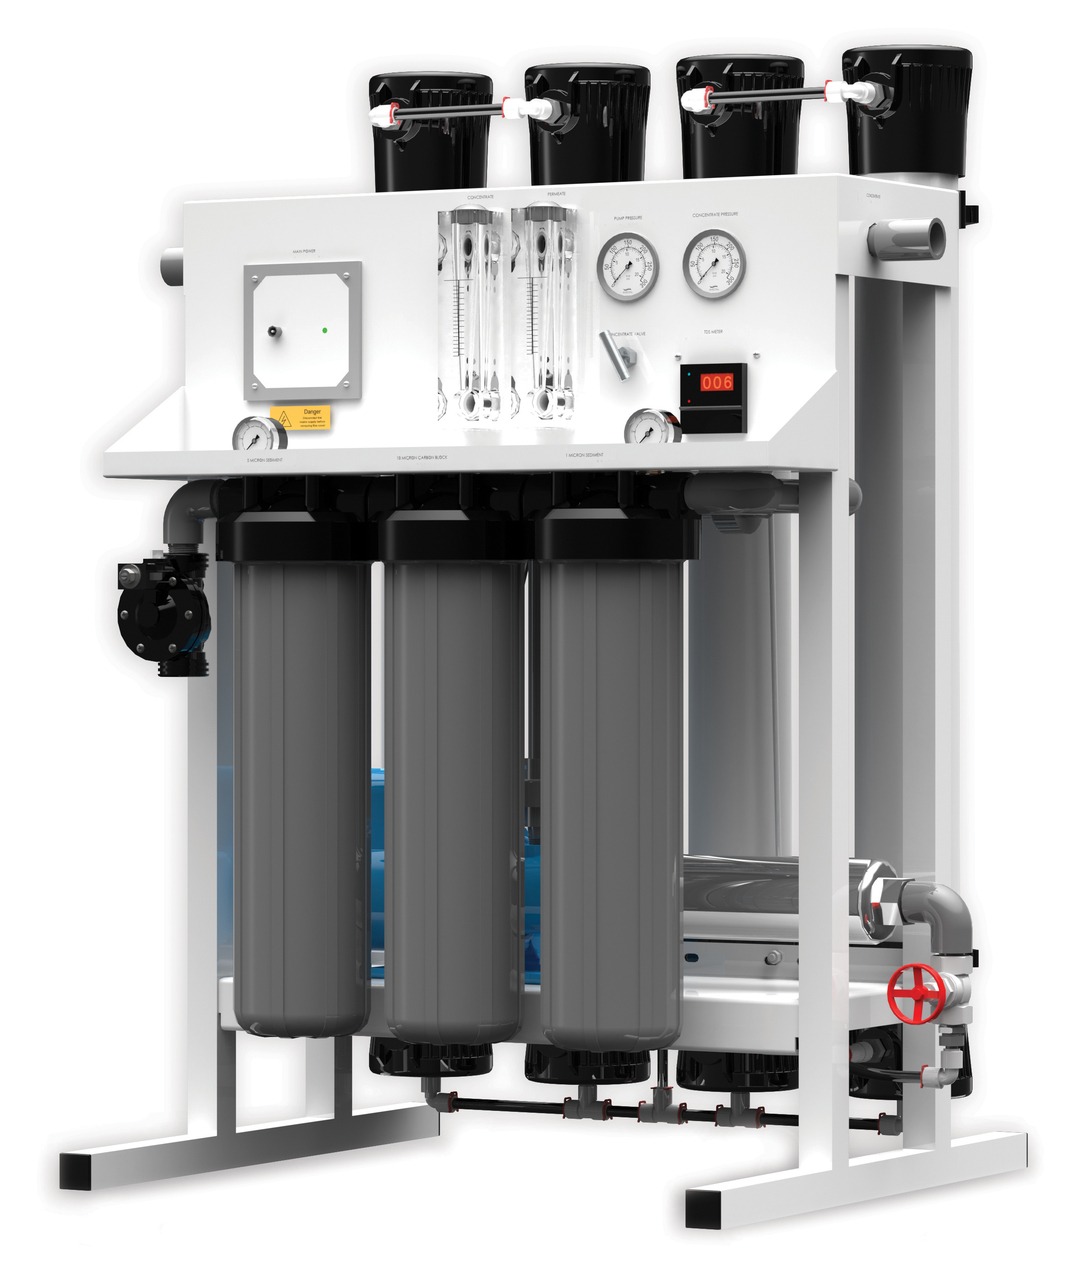 FLEXEON CT-7000A REVERSE OSMOSIS SYSTEM